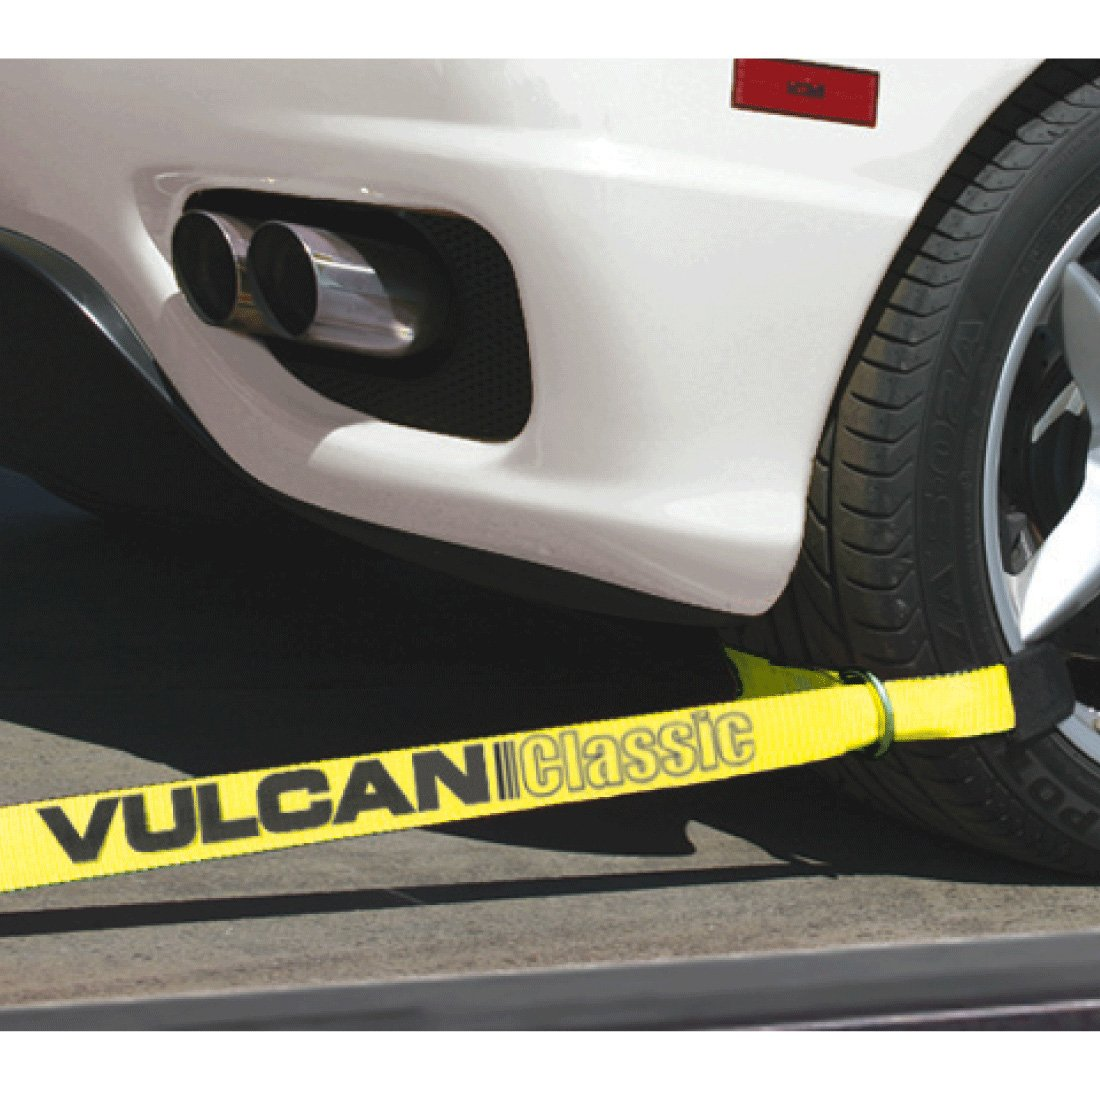 Vulcan Classic 2'' x 12' Yellow Classic Exotic Car Rim Tie Down (set of 4 straps and ratchets) by Vulcan (Image #2)